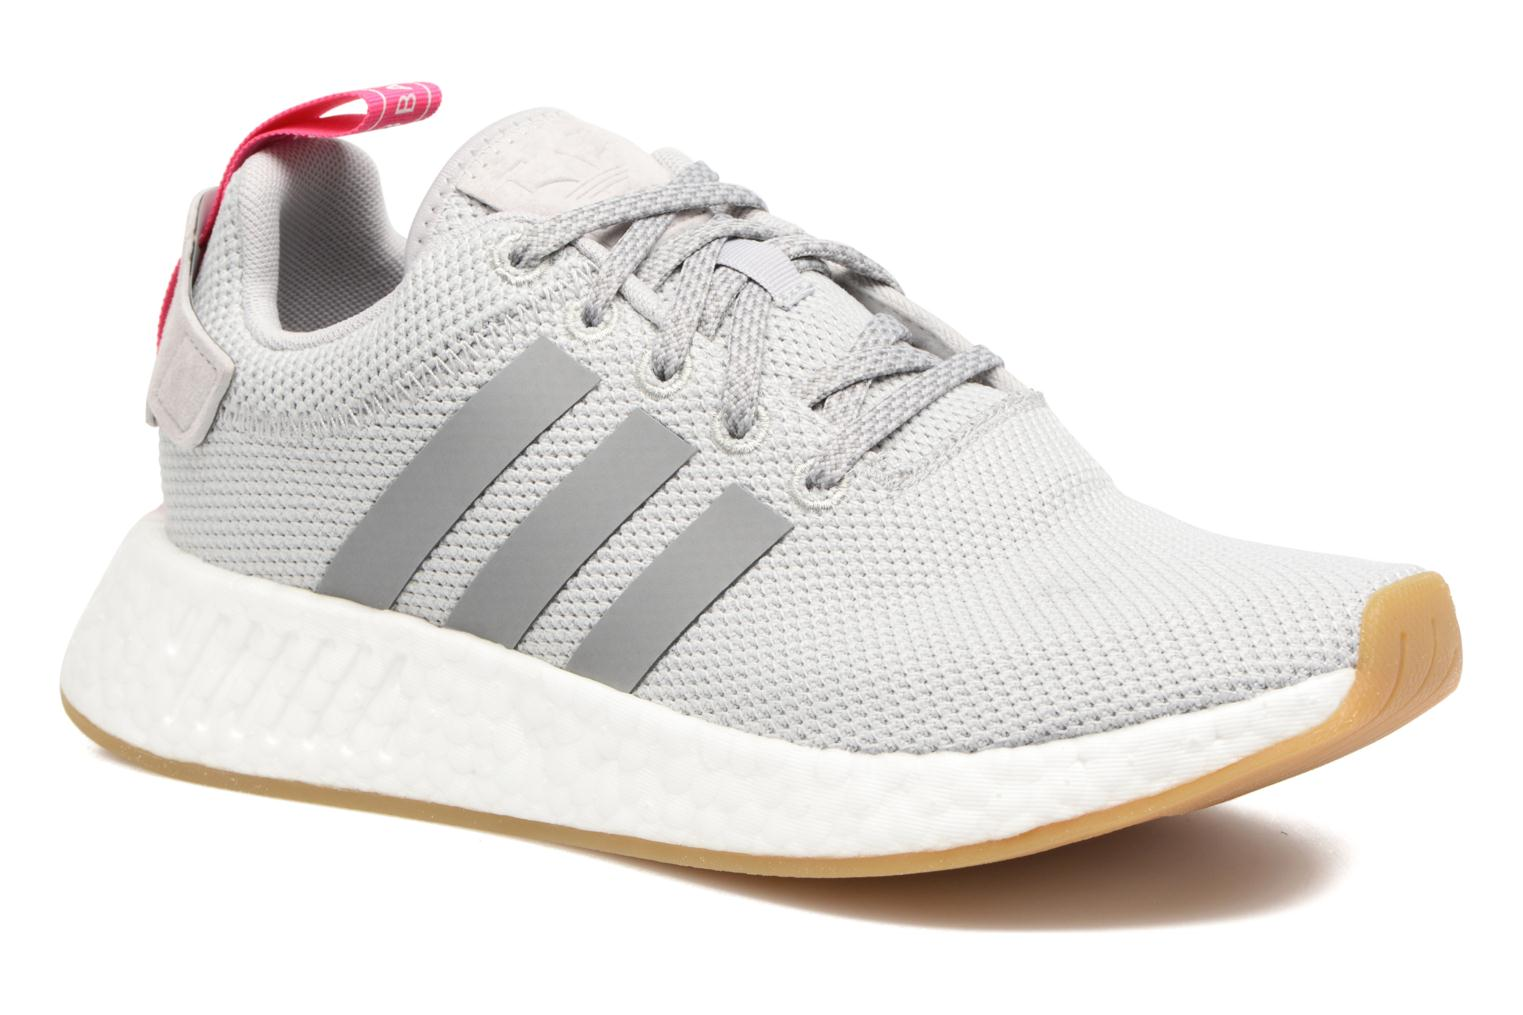 Roscen/Blacry/Ftwbla Adidas Originals Nmd_R2 W (Rose)